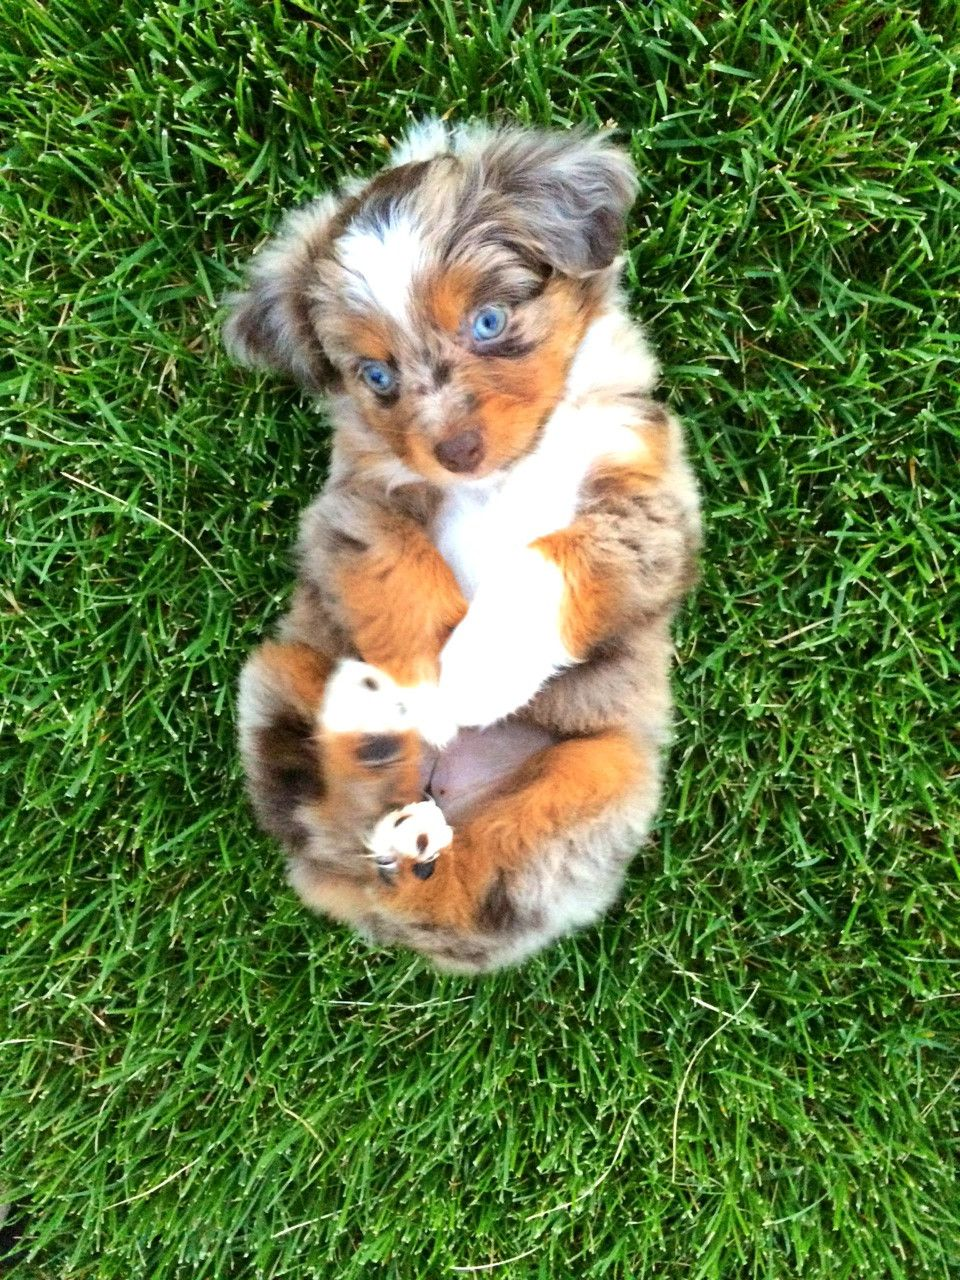 This Is The Dog I Want It S An Australian Shepherd With Light